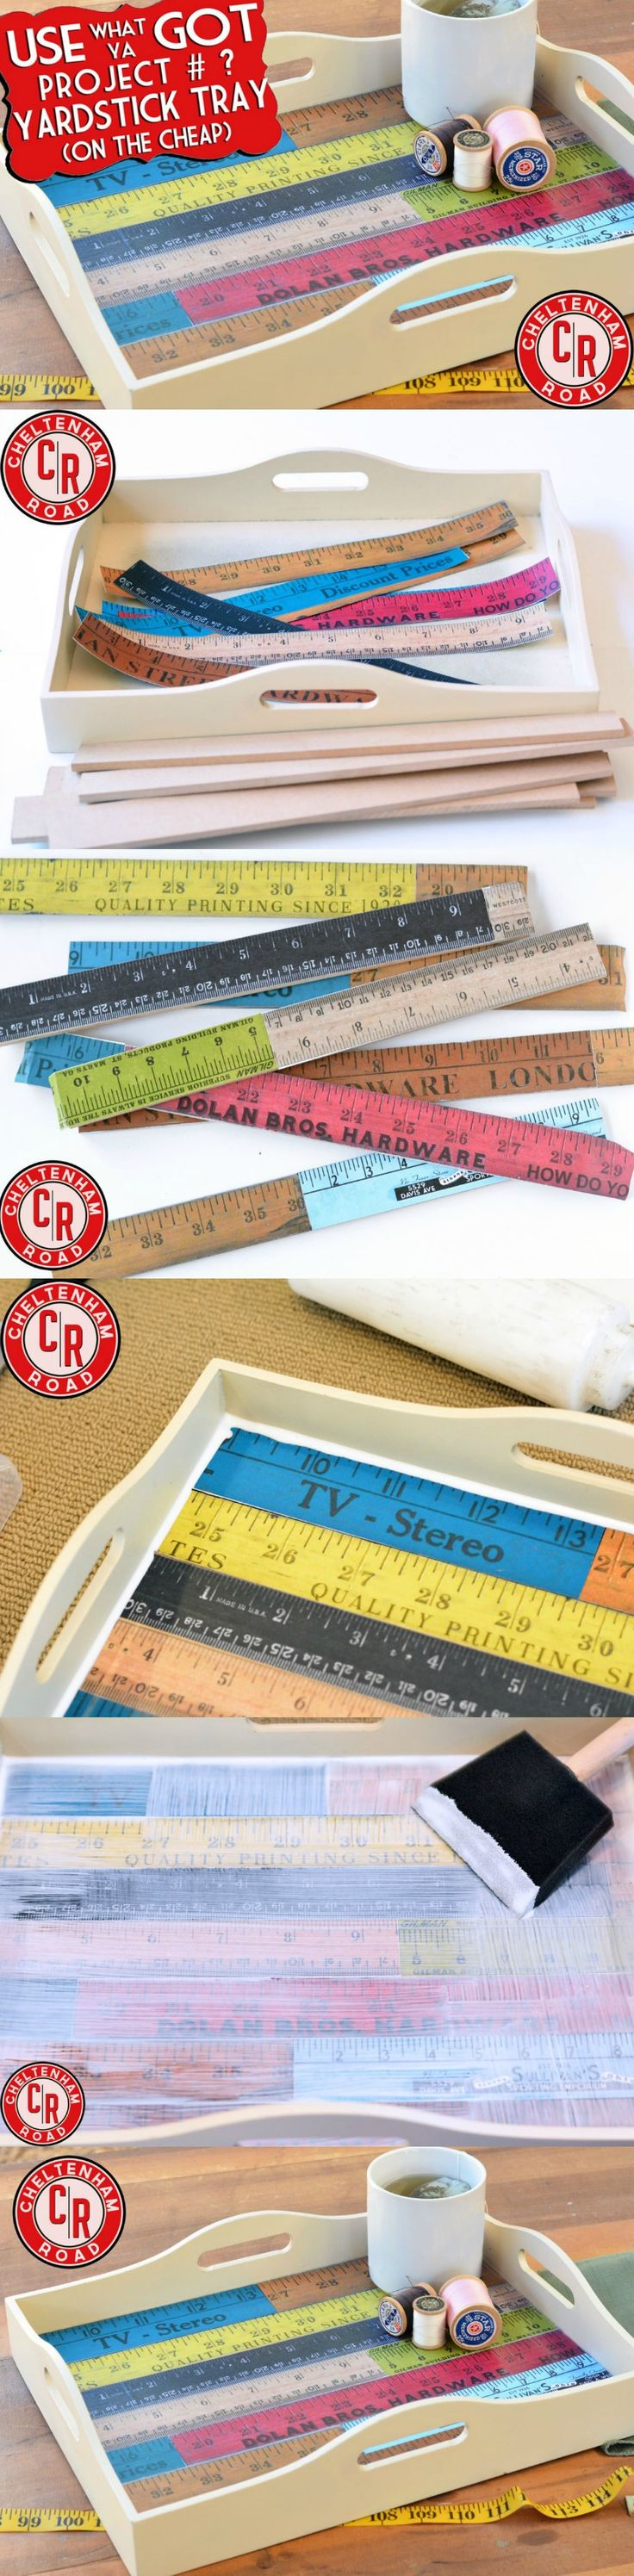 Amazing DIY Yardstick Tray With Printables